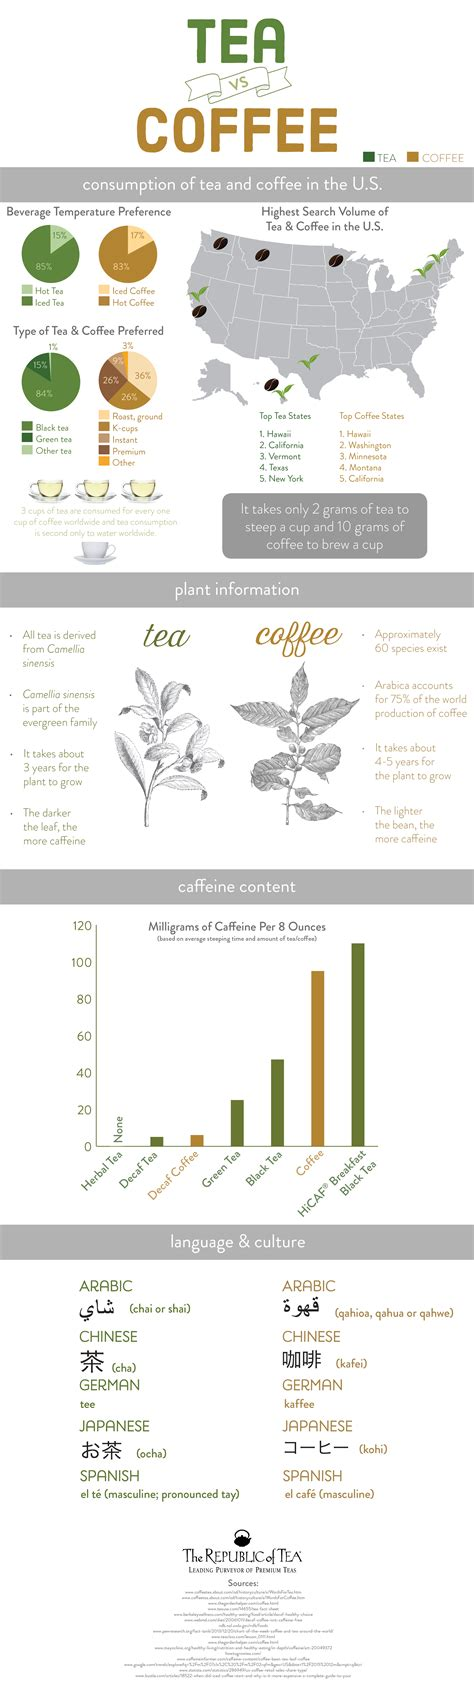 Generally speaking oolong tea contains more caffeine than green tea, but how does it compare to coffee? Tea vs Coffee: Regional Interest, Origins, Caffeine and ...